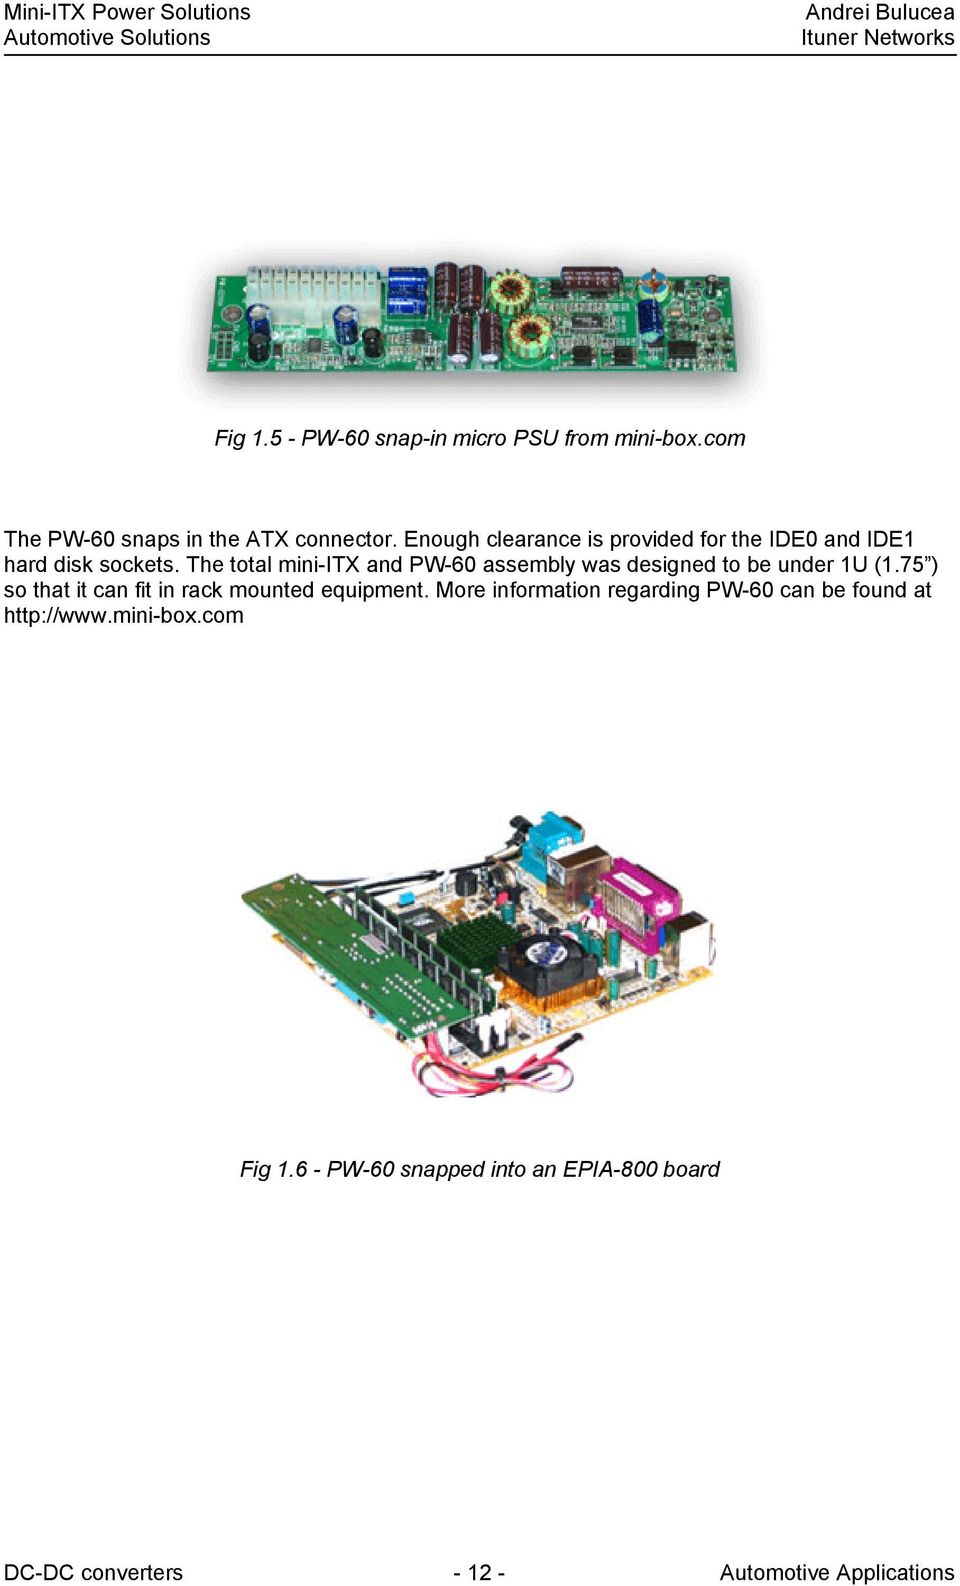 Mini Itx Power Solutions Pdf Automotif Wiring Diagram Adjustable Supply 12 30v 5a Using The Total And Pw 60 Assembly Was Designed To Be Under 1u